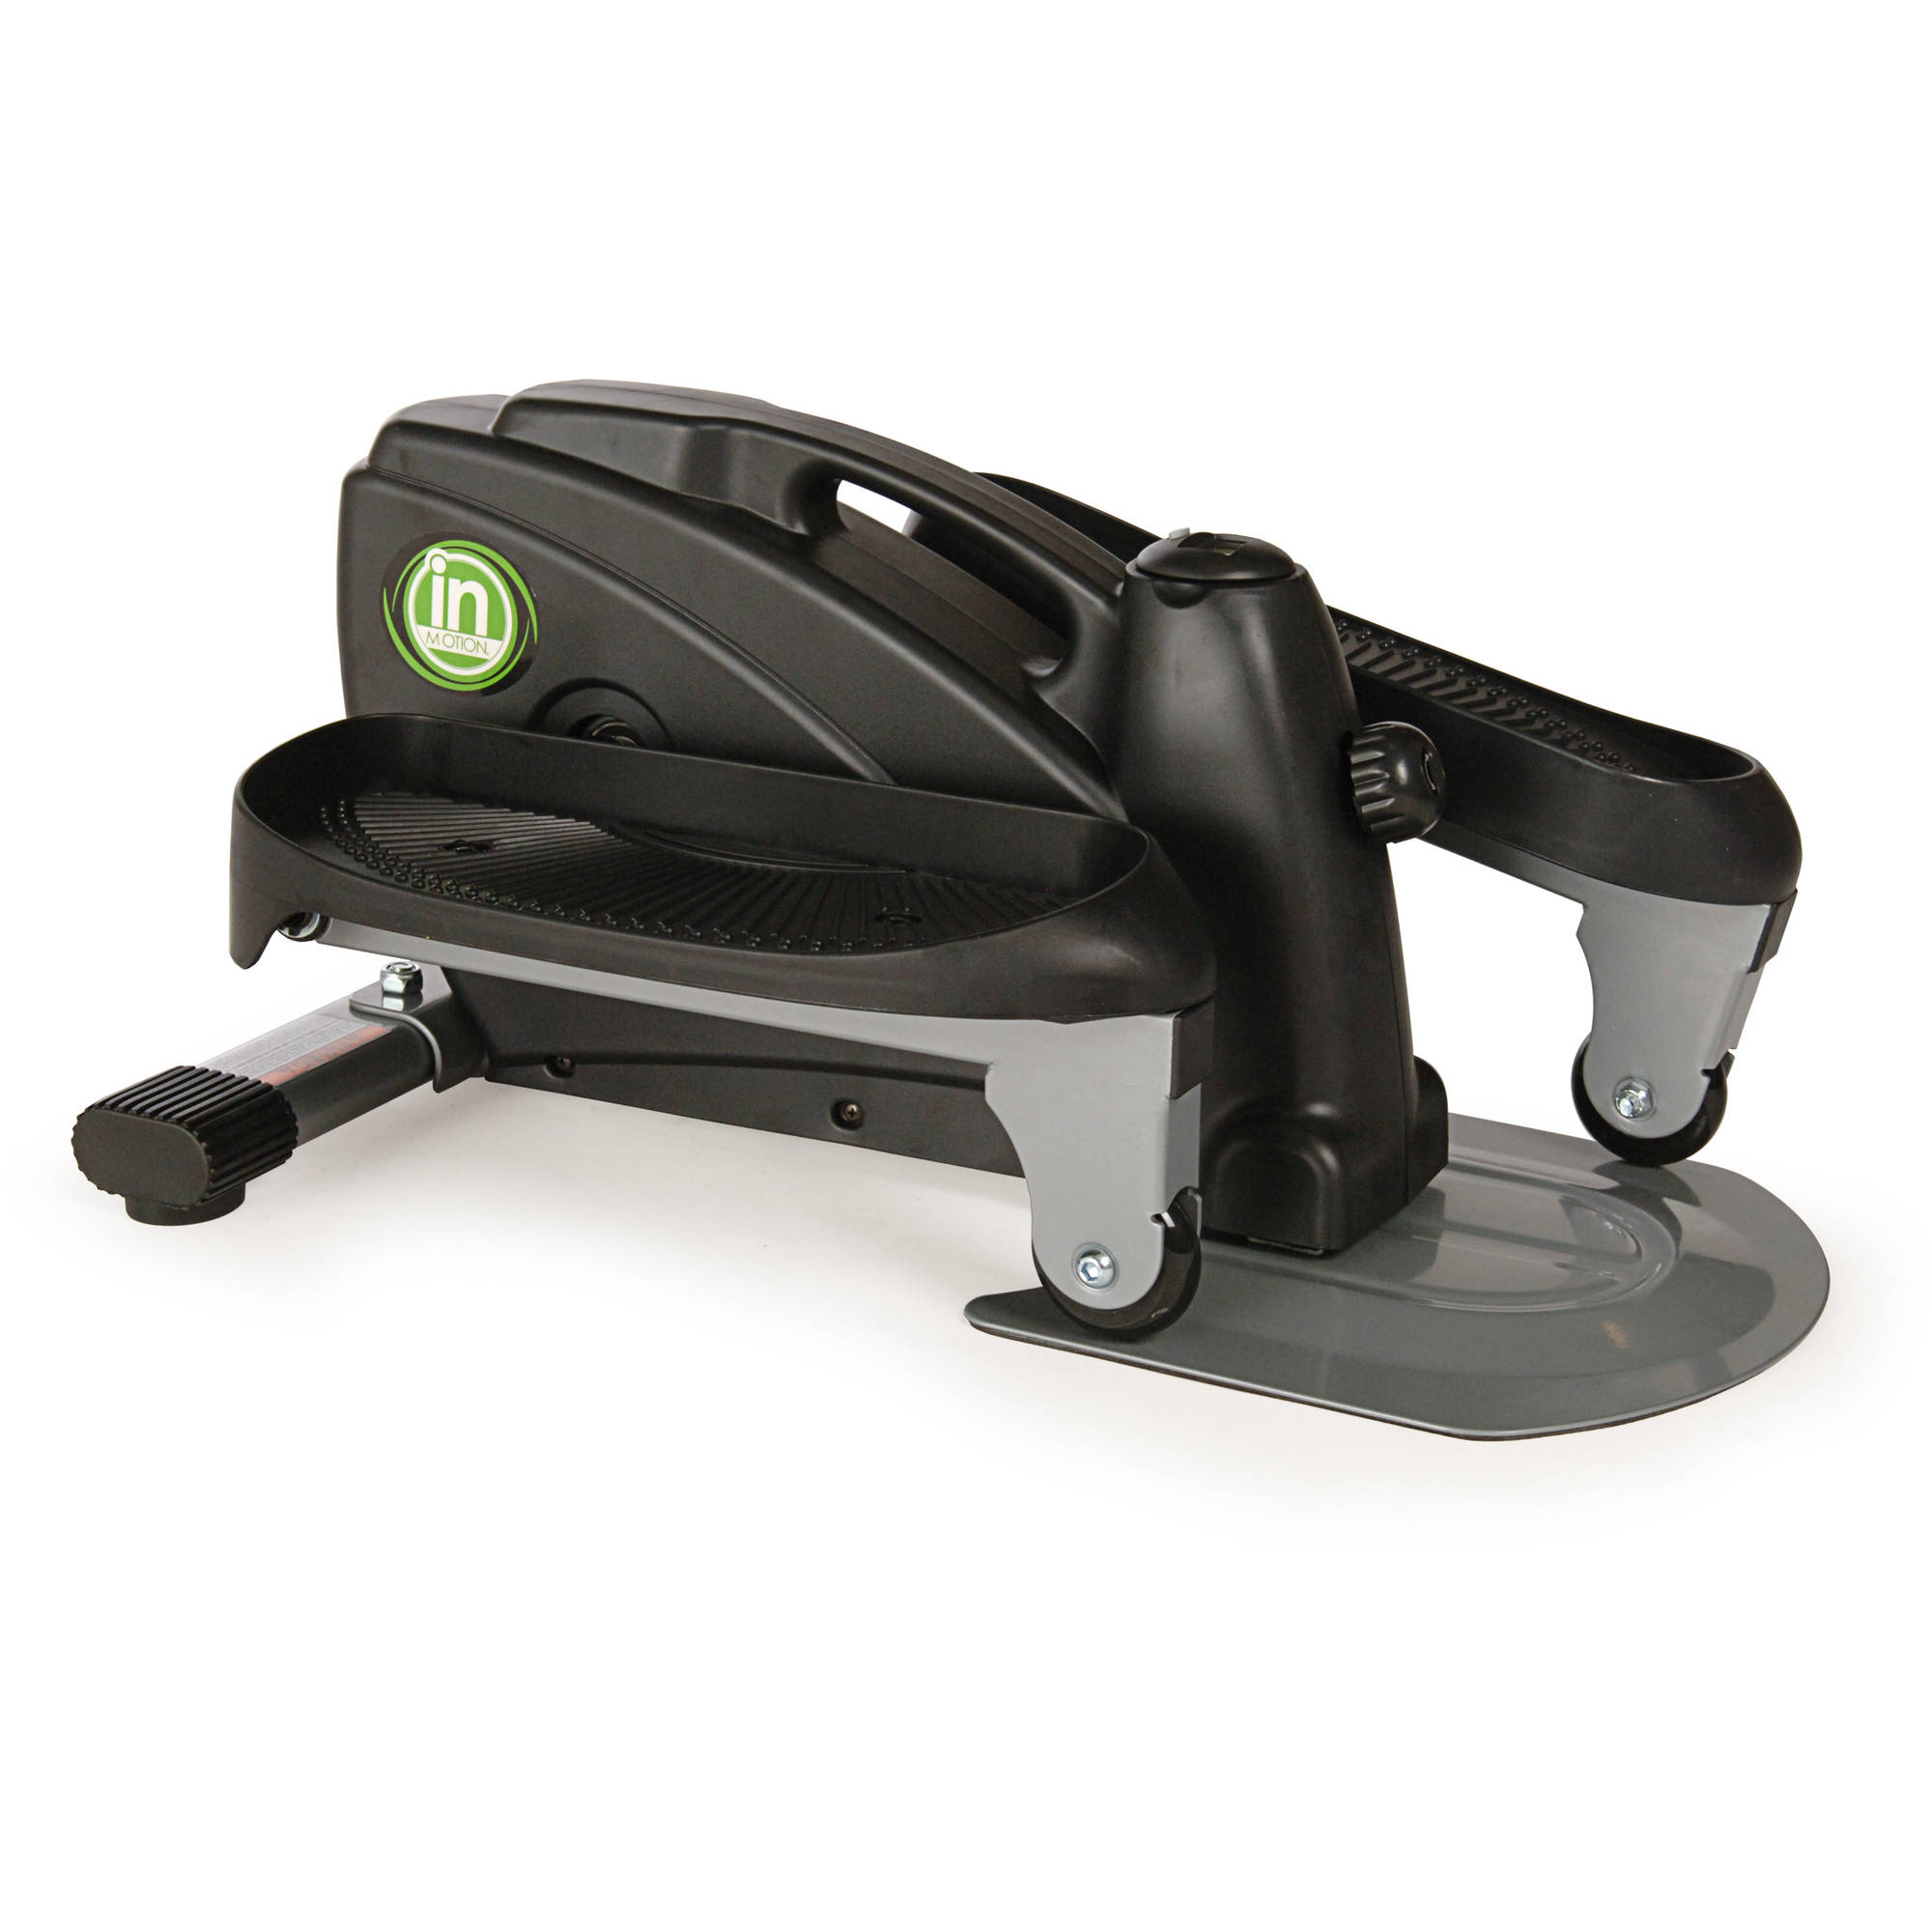 InMotion Compact Strider